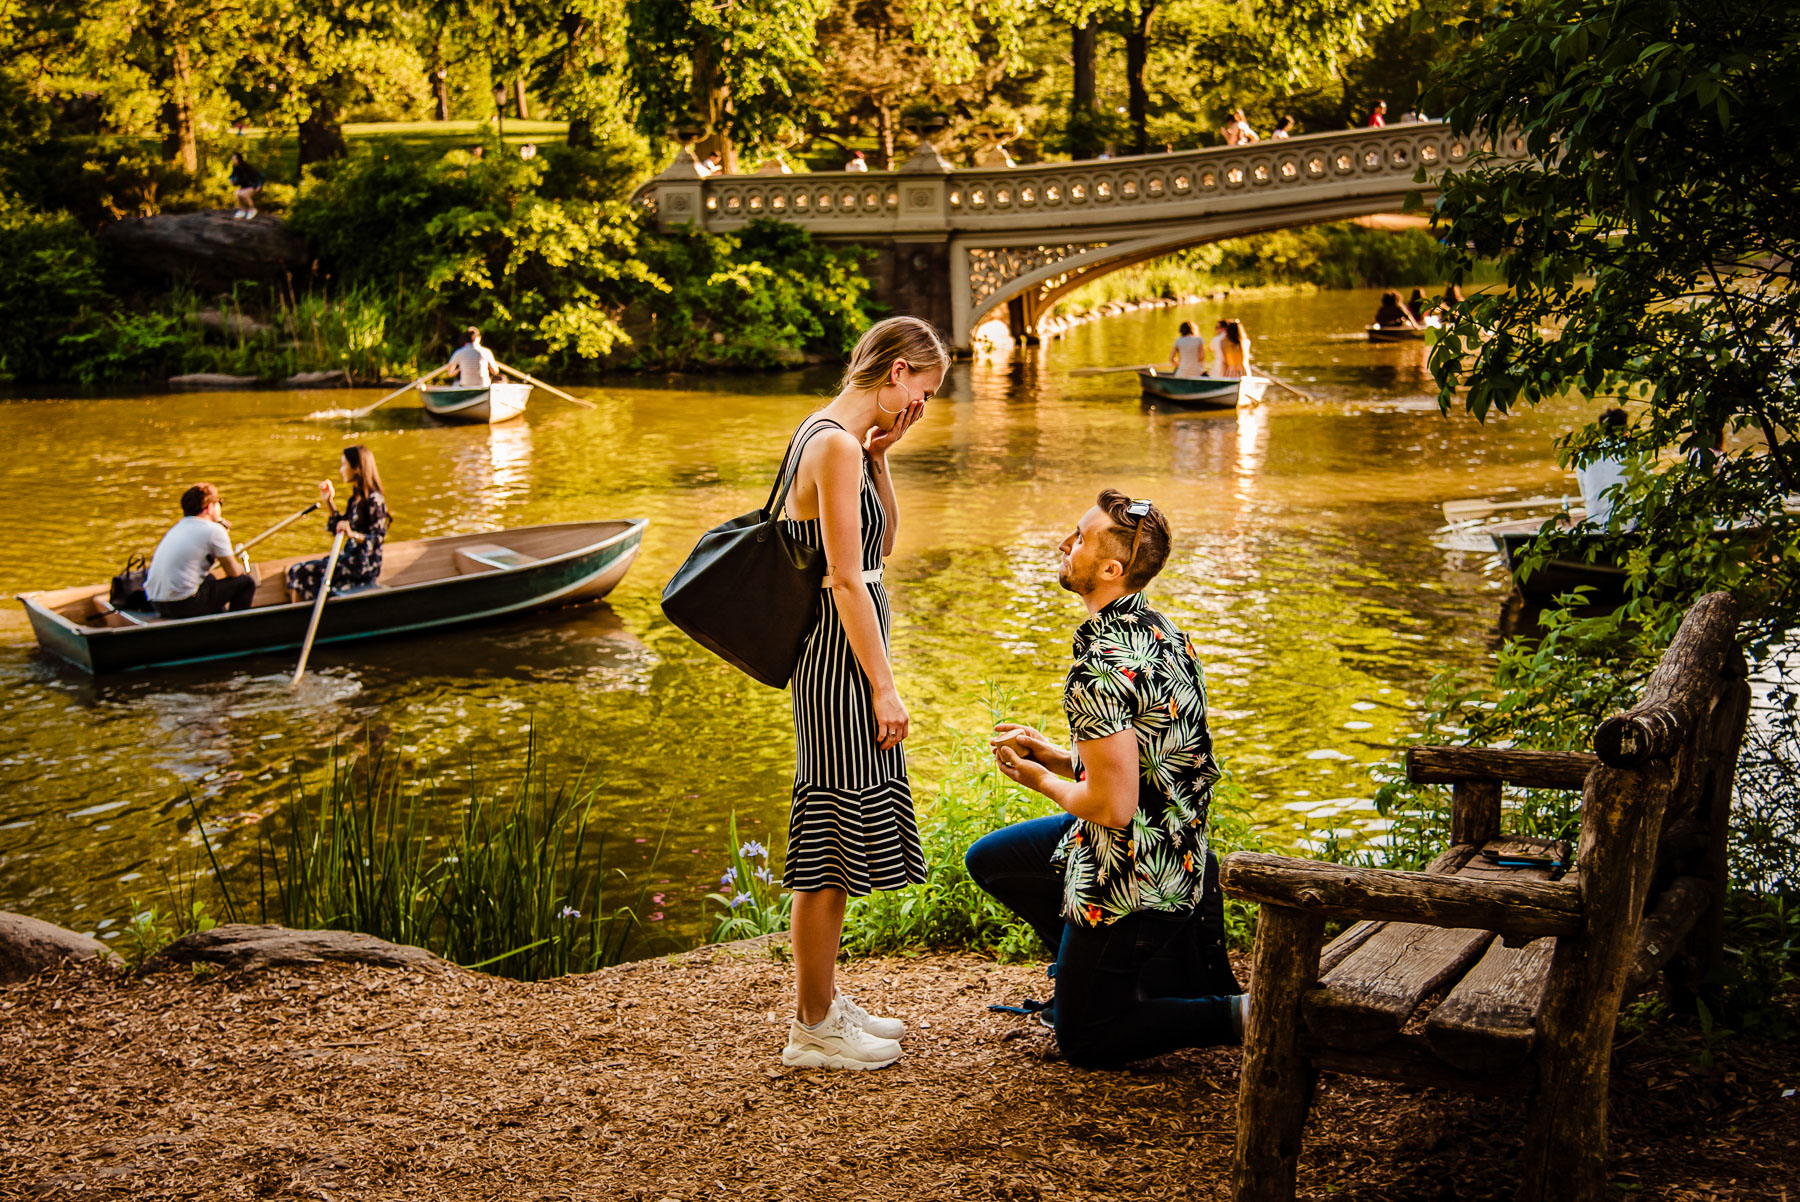 Central Park NYC Proposal guys get on knee